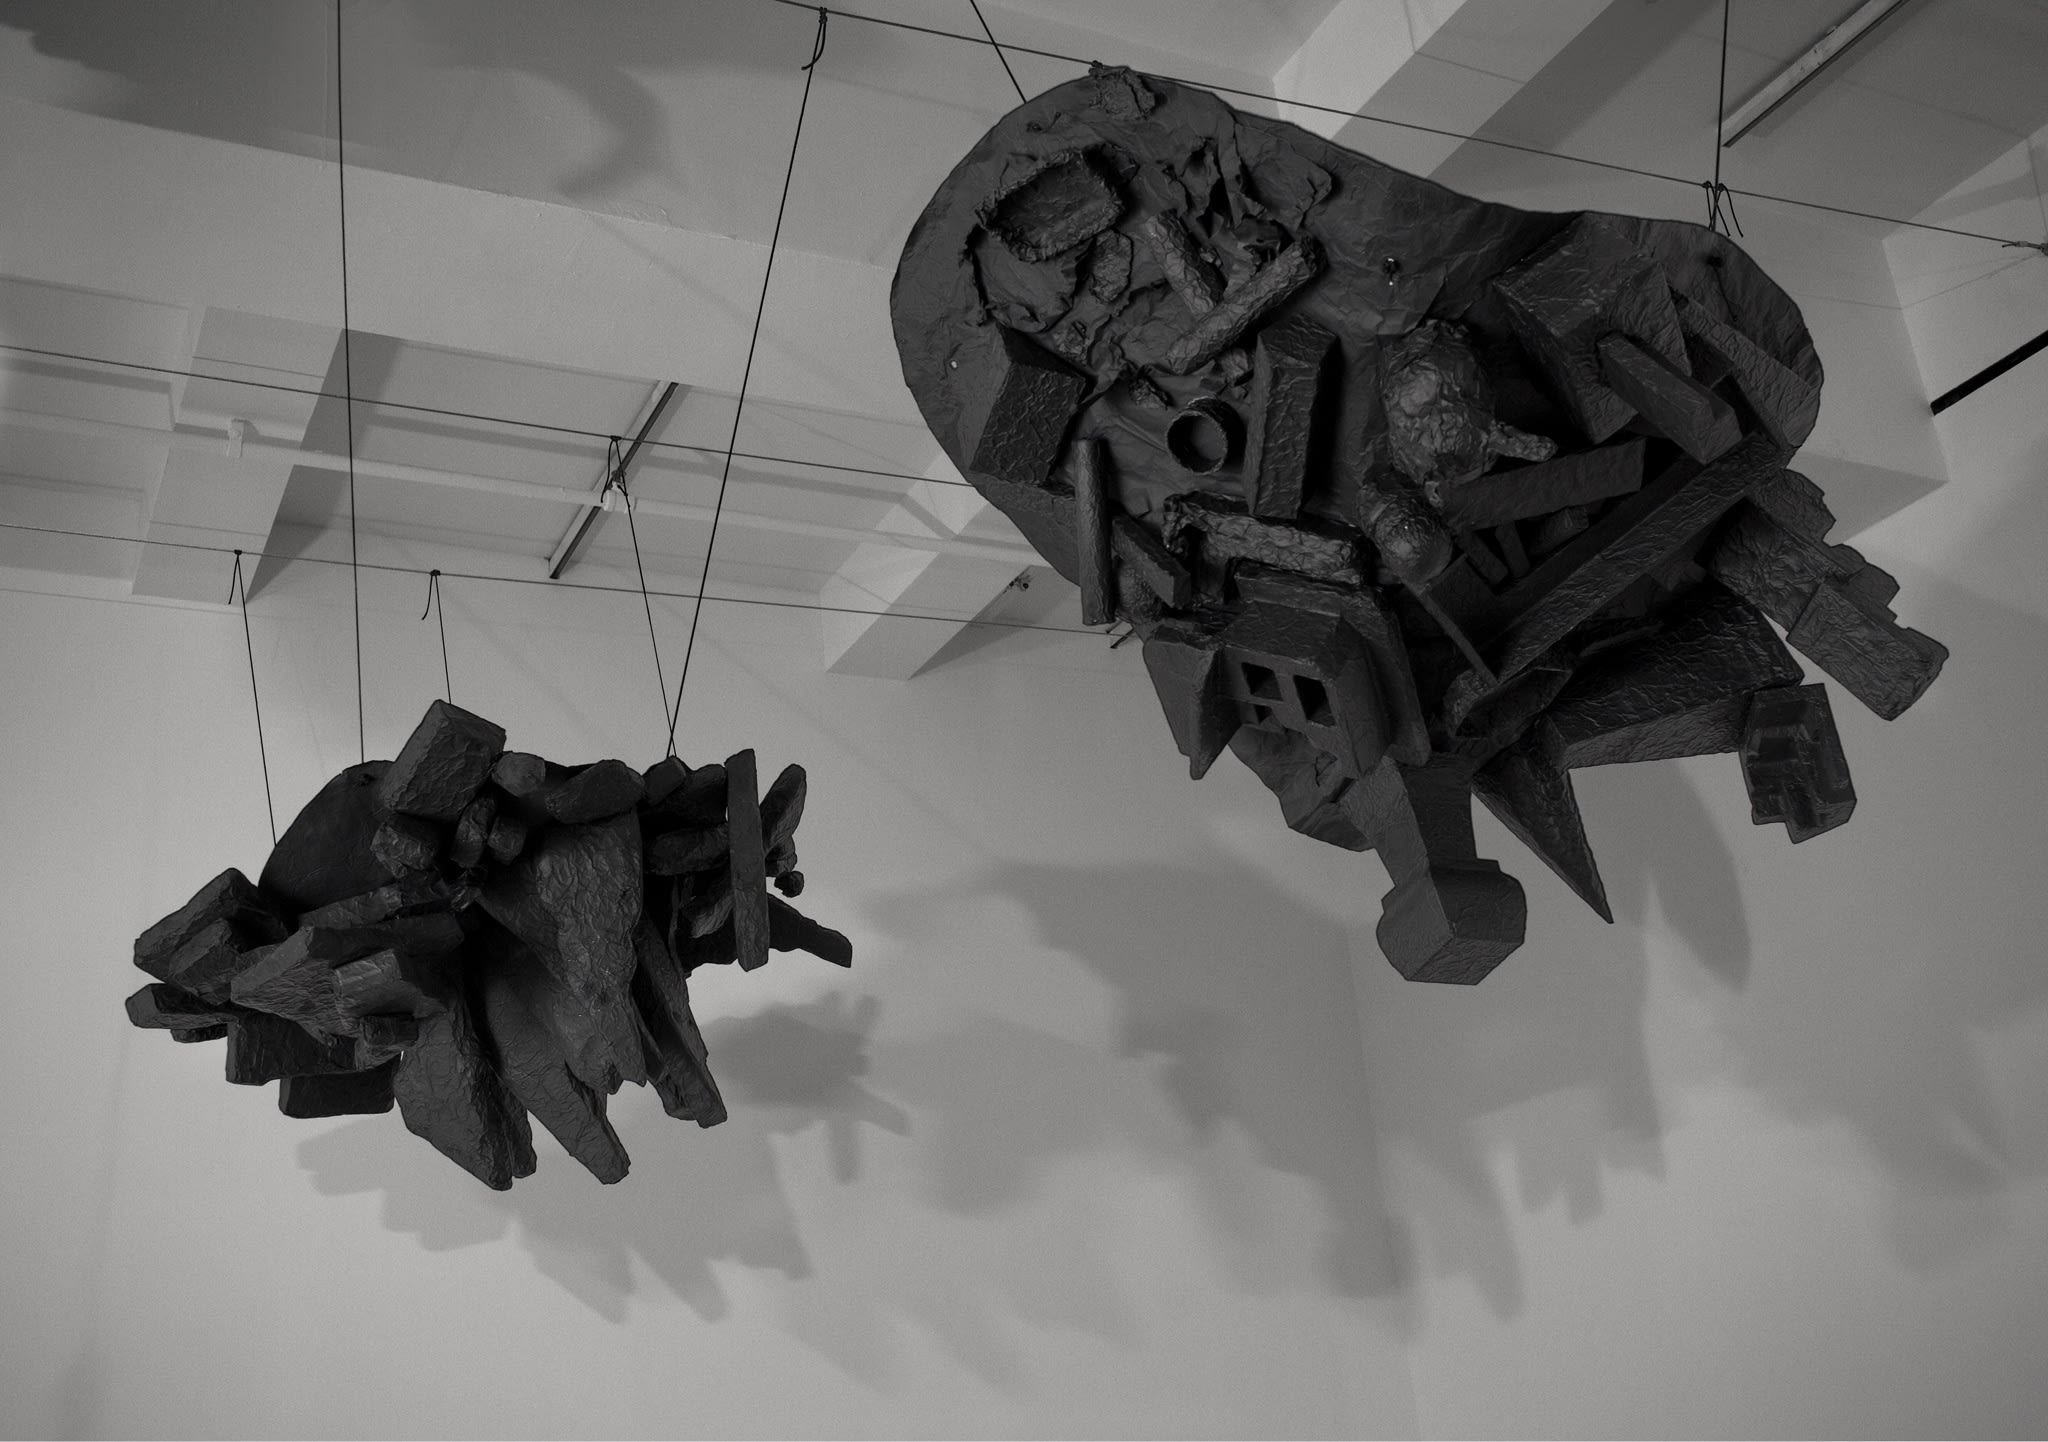 Two large black sculptures, one resembling a pile of stalactite and the other resembling a pile of detritus, hang from the ceiling.